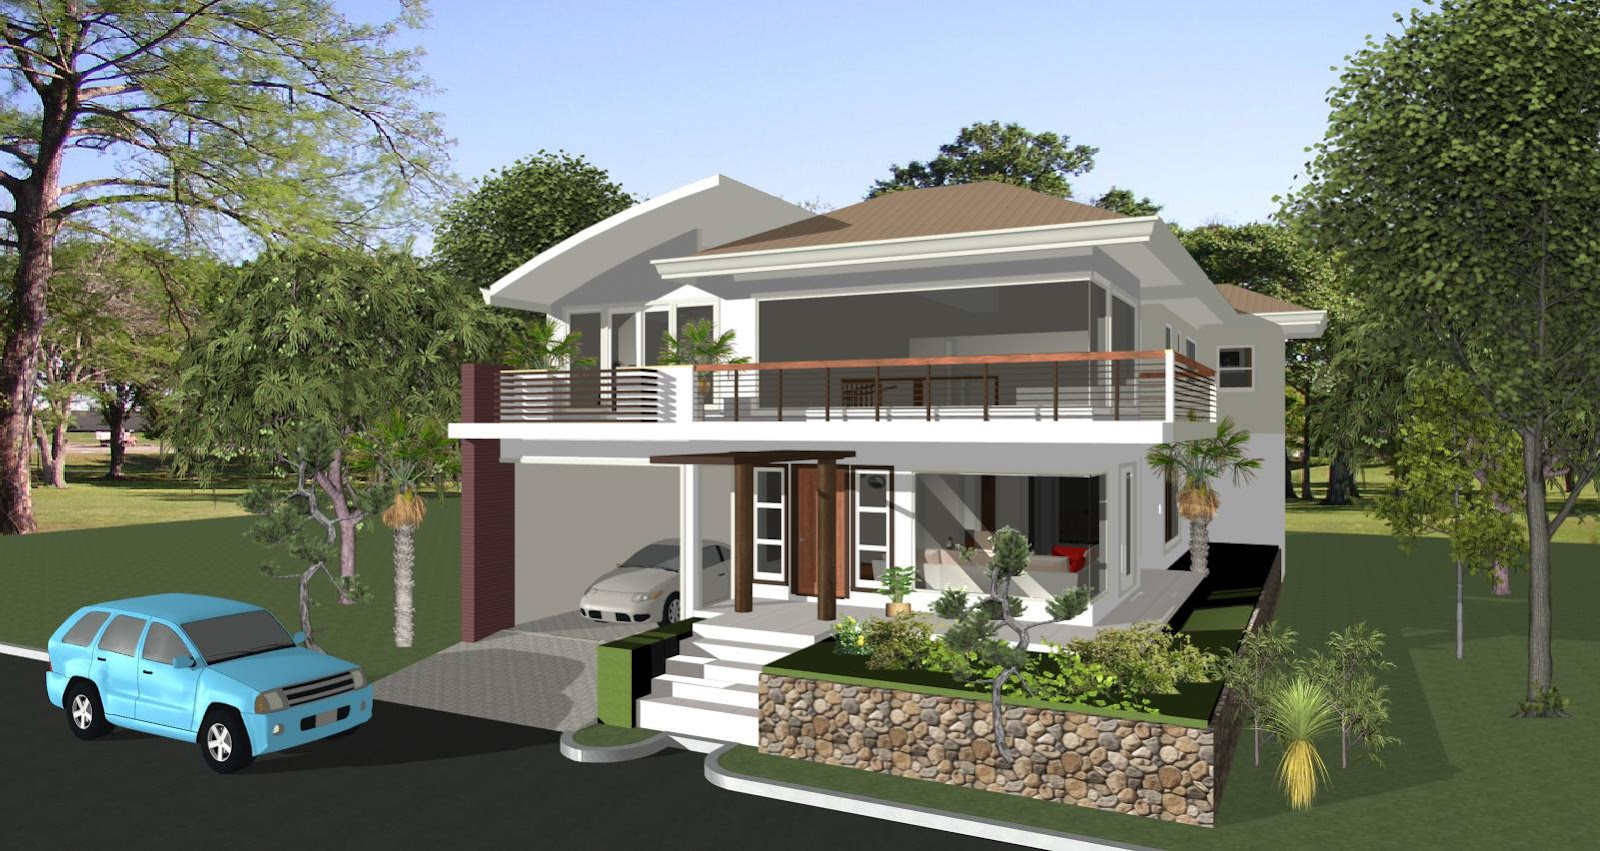 House designs philippines architect bill house plans Best home builder websites